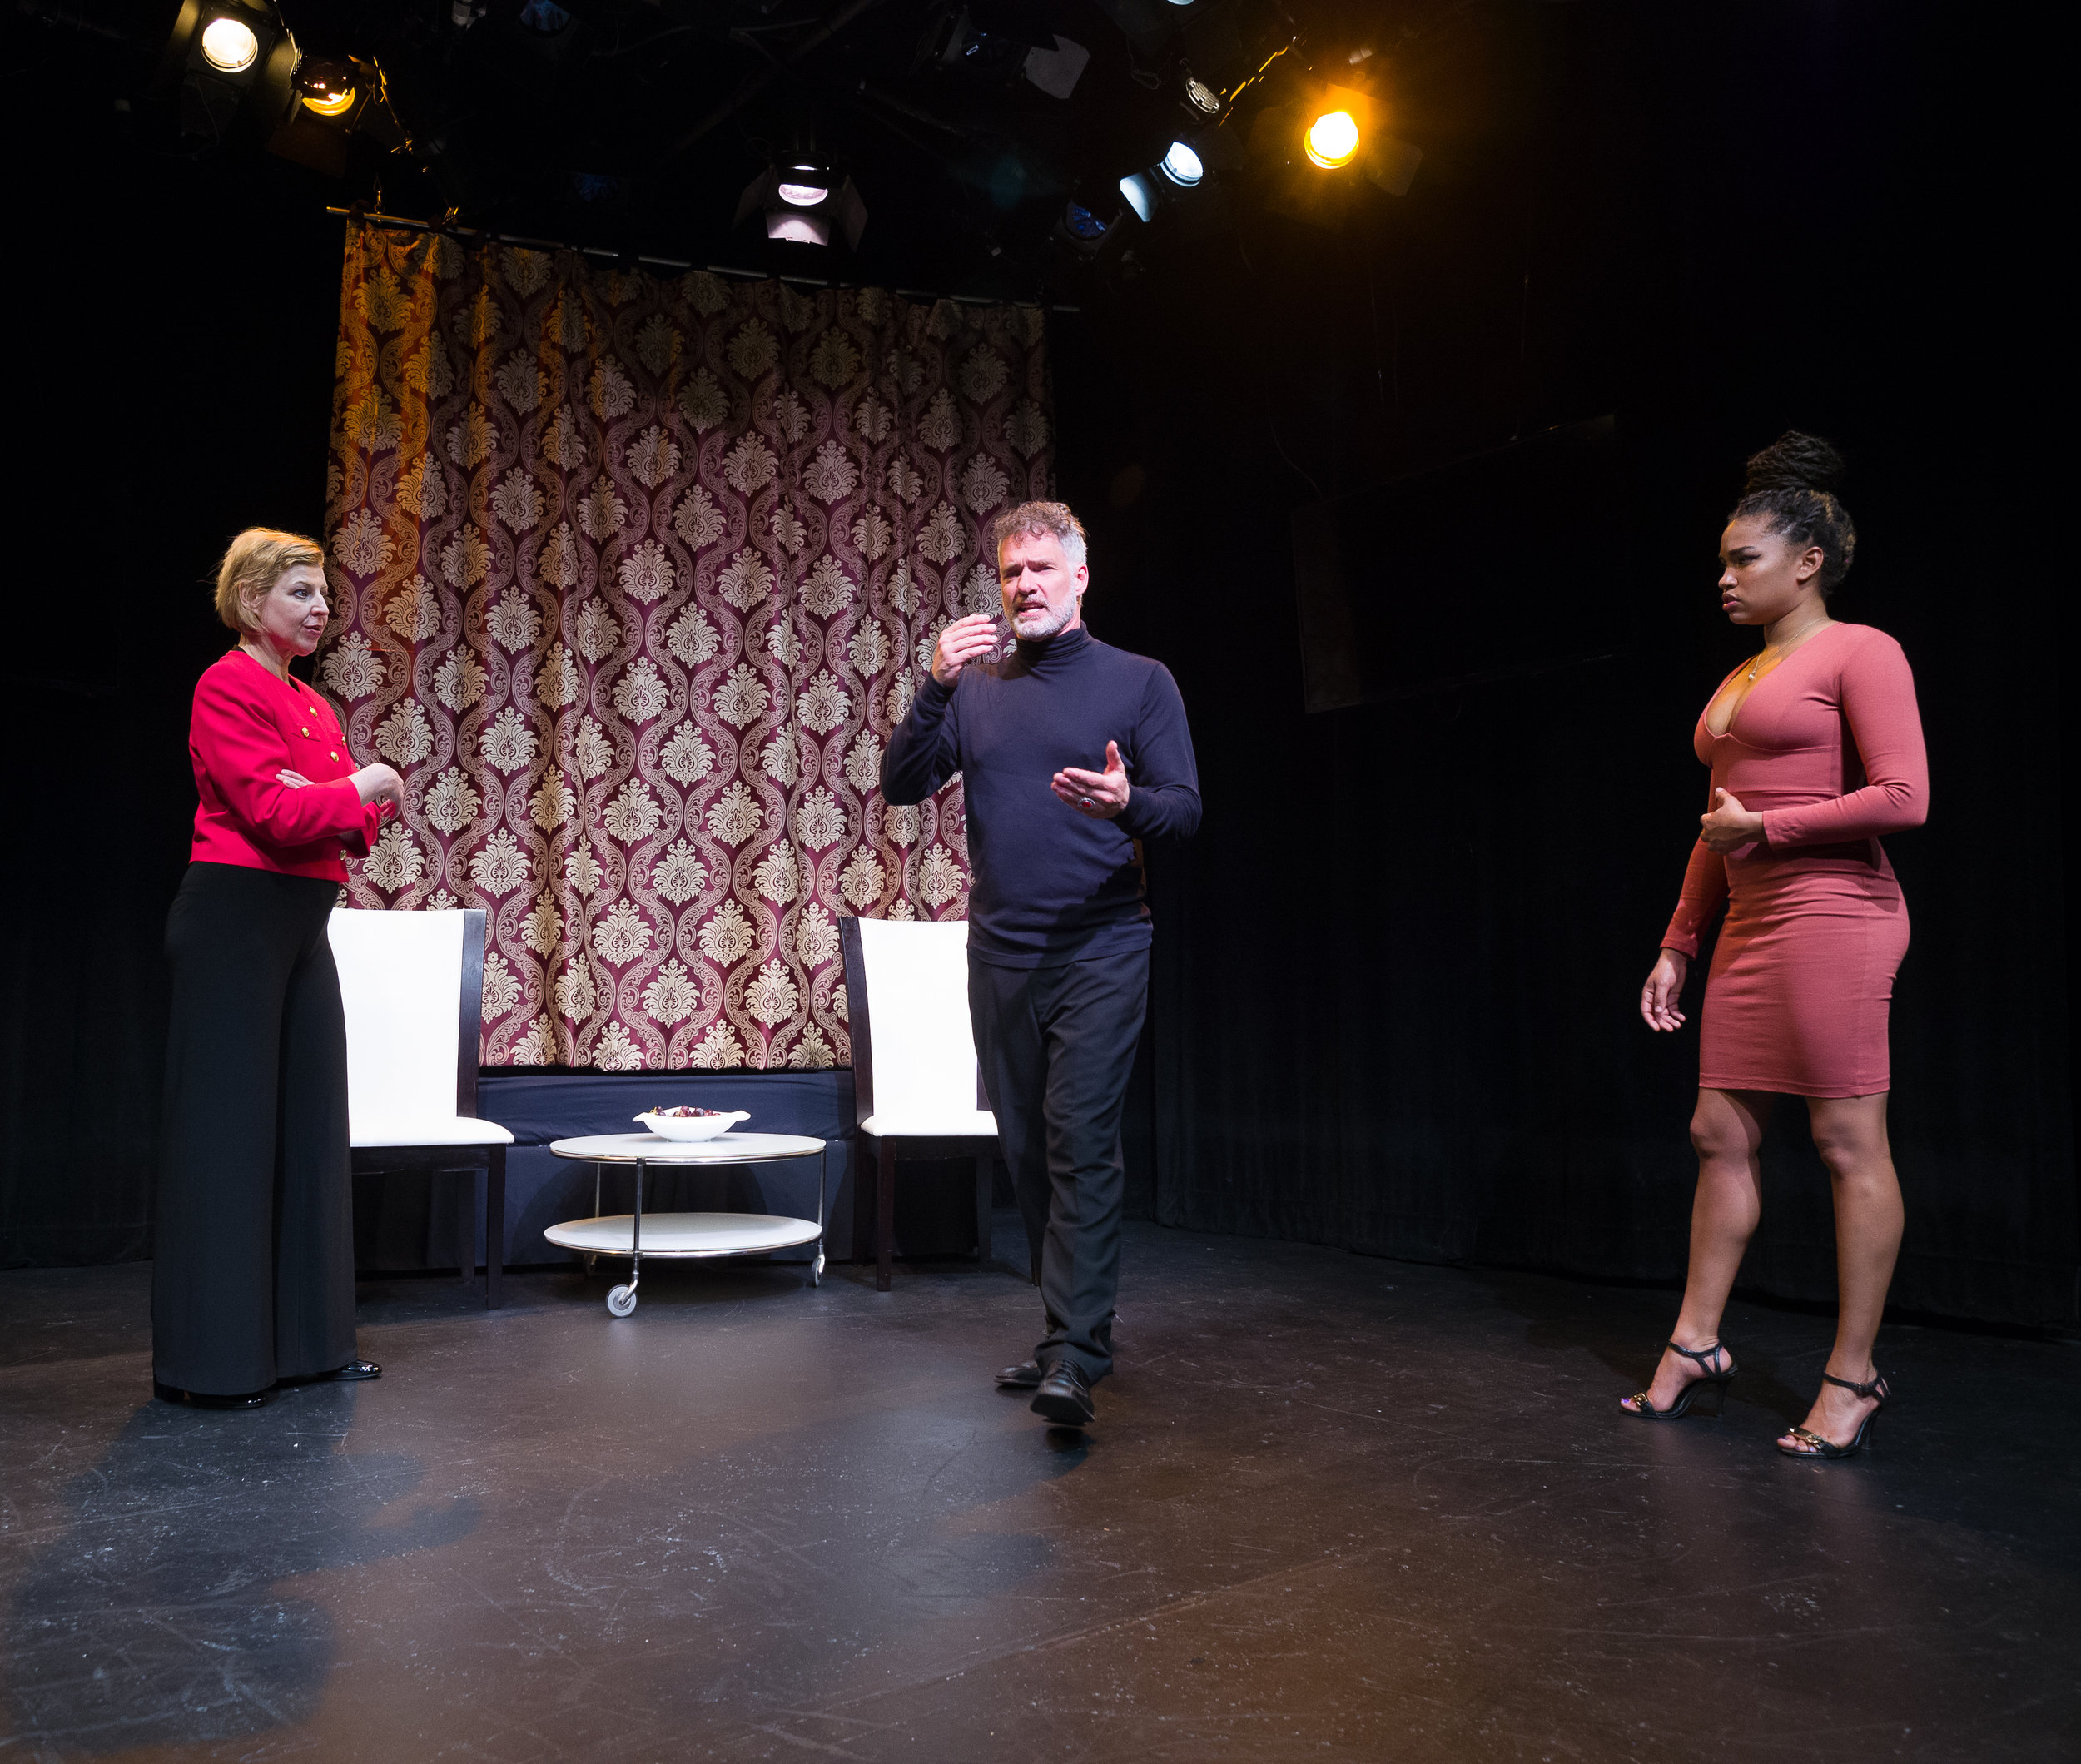 Left to Right: Françoise Balthazar as Lucrezia Borgia; Paul Hopkins as Alfonso D'Este; Chelsea Russell as Angela Di Ghilini. Set and costumes by Jan Venus; lighting design by Waleed Ansari. Photography by Rene Stakenborg.